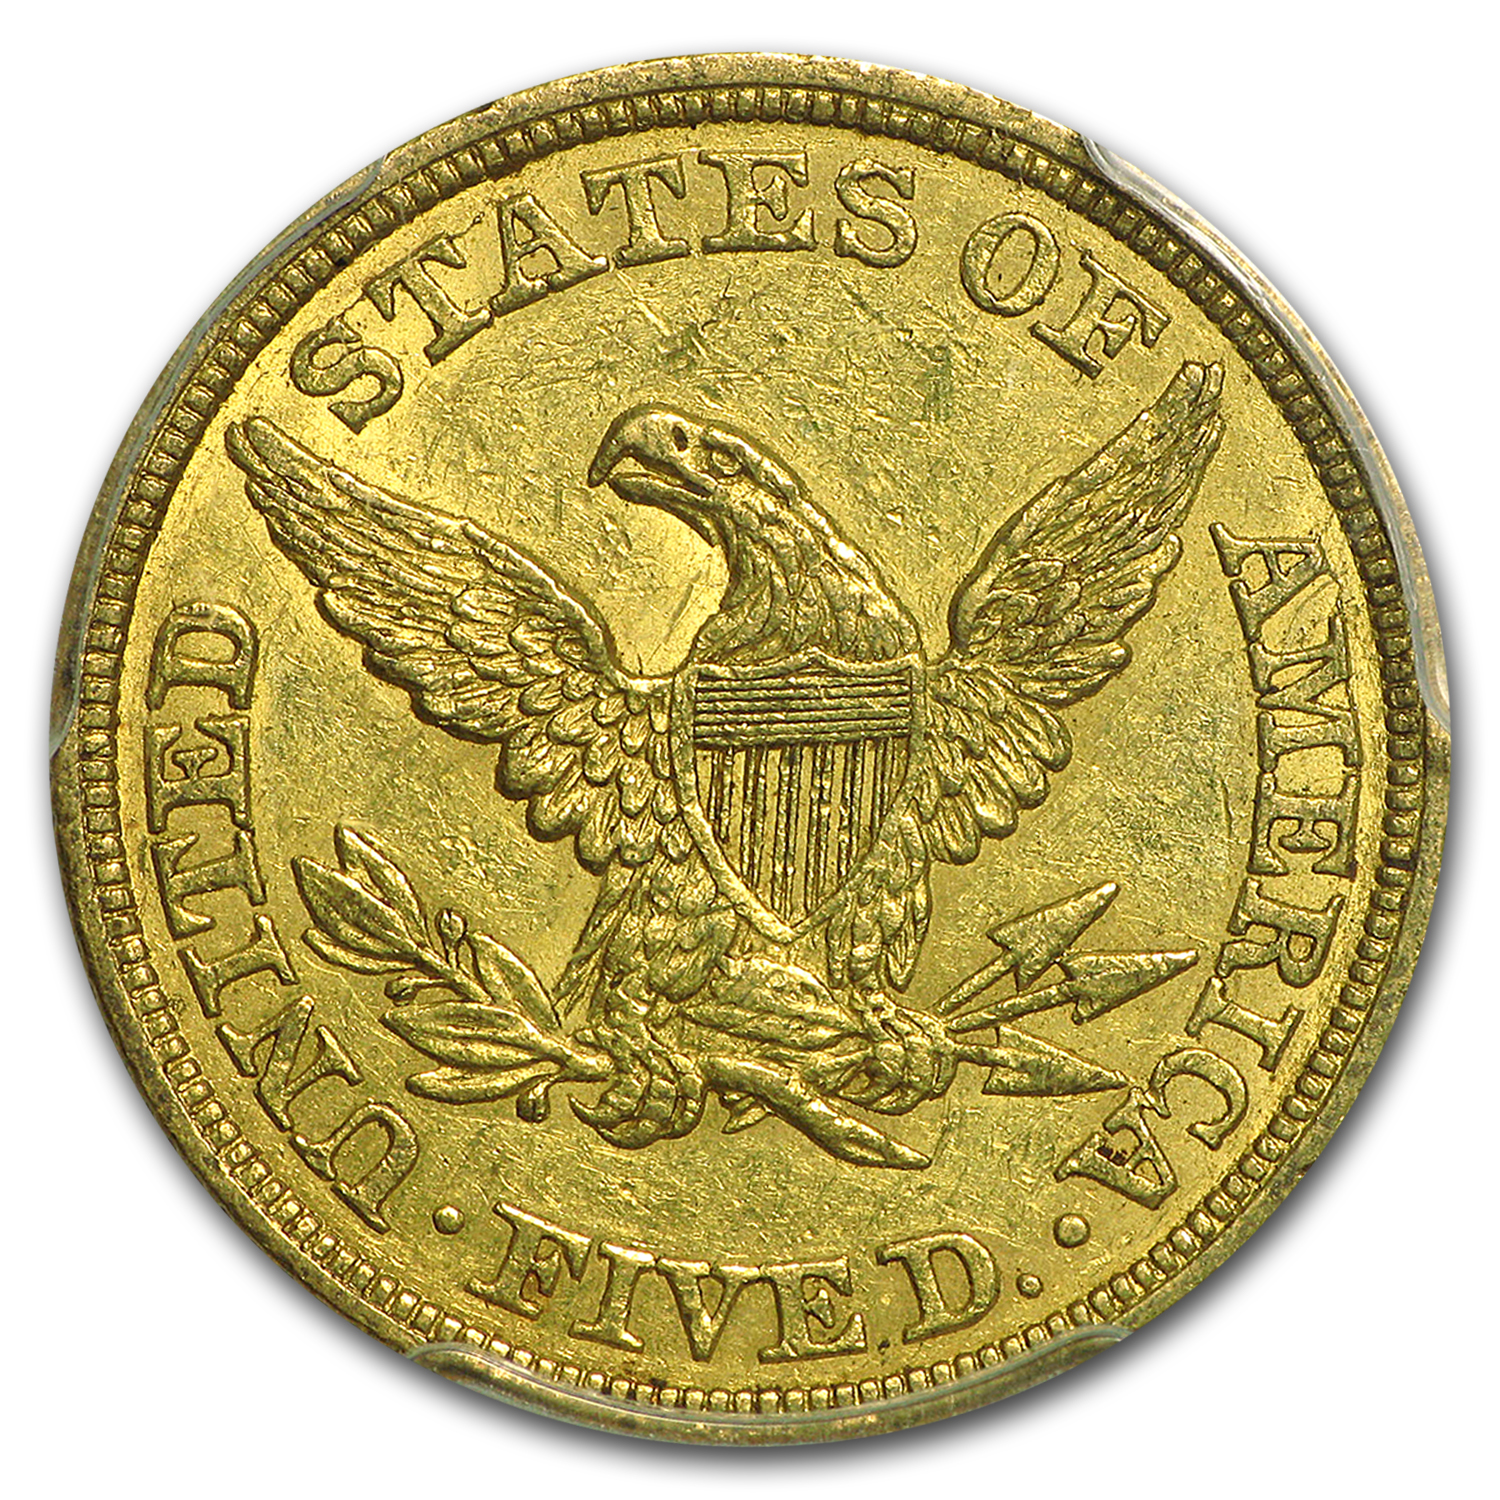 1845 $5 Liberty Gold Half Eagle AU-50 PCGS